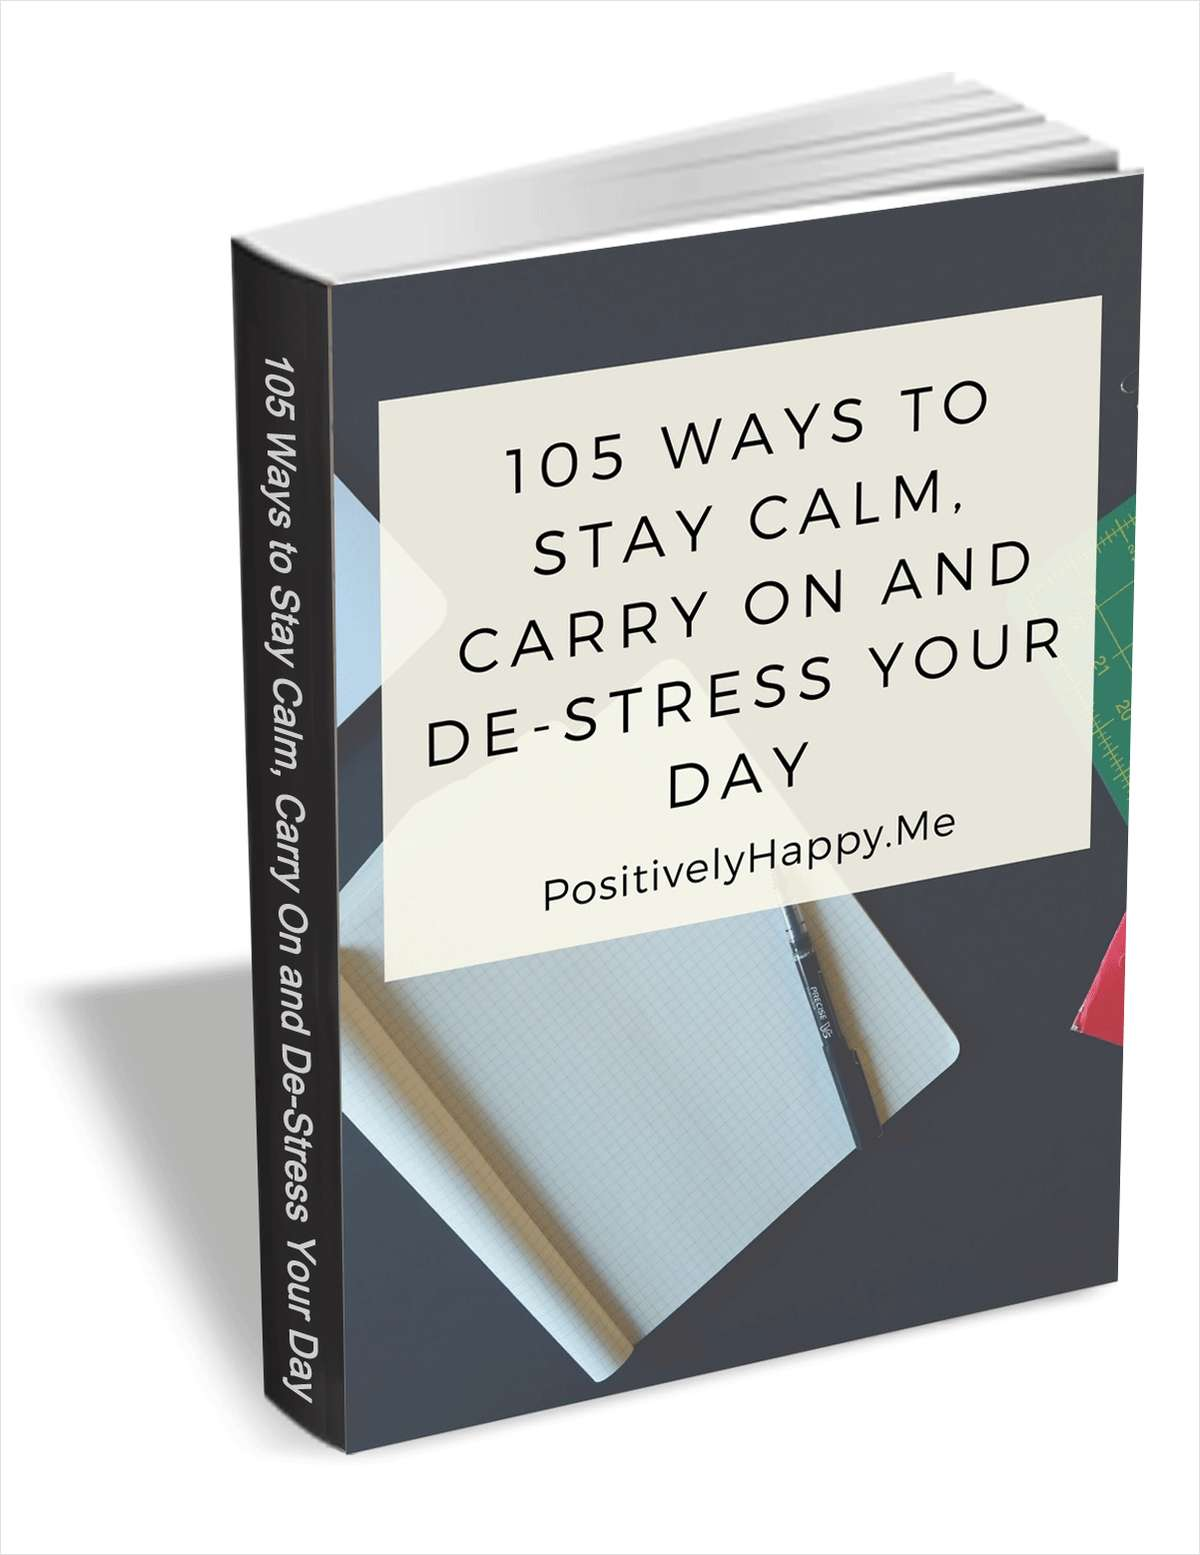 105 Ways To Stay Calm, Carry On and De-Stress Your Day